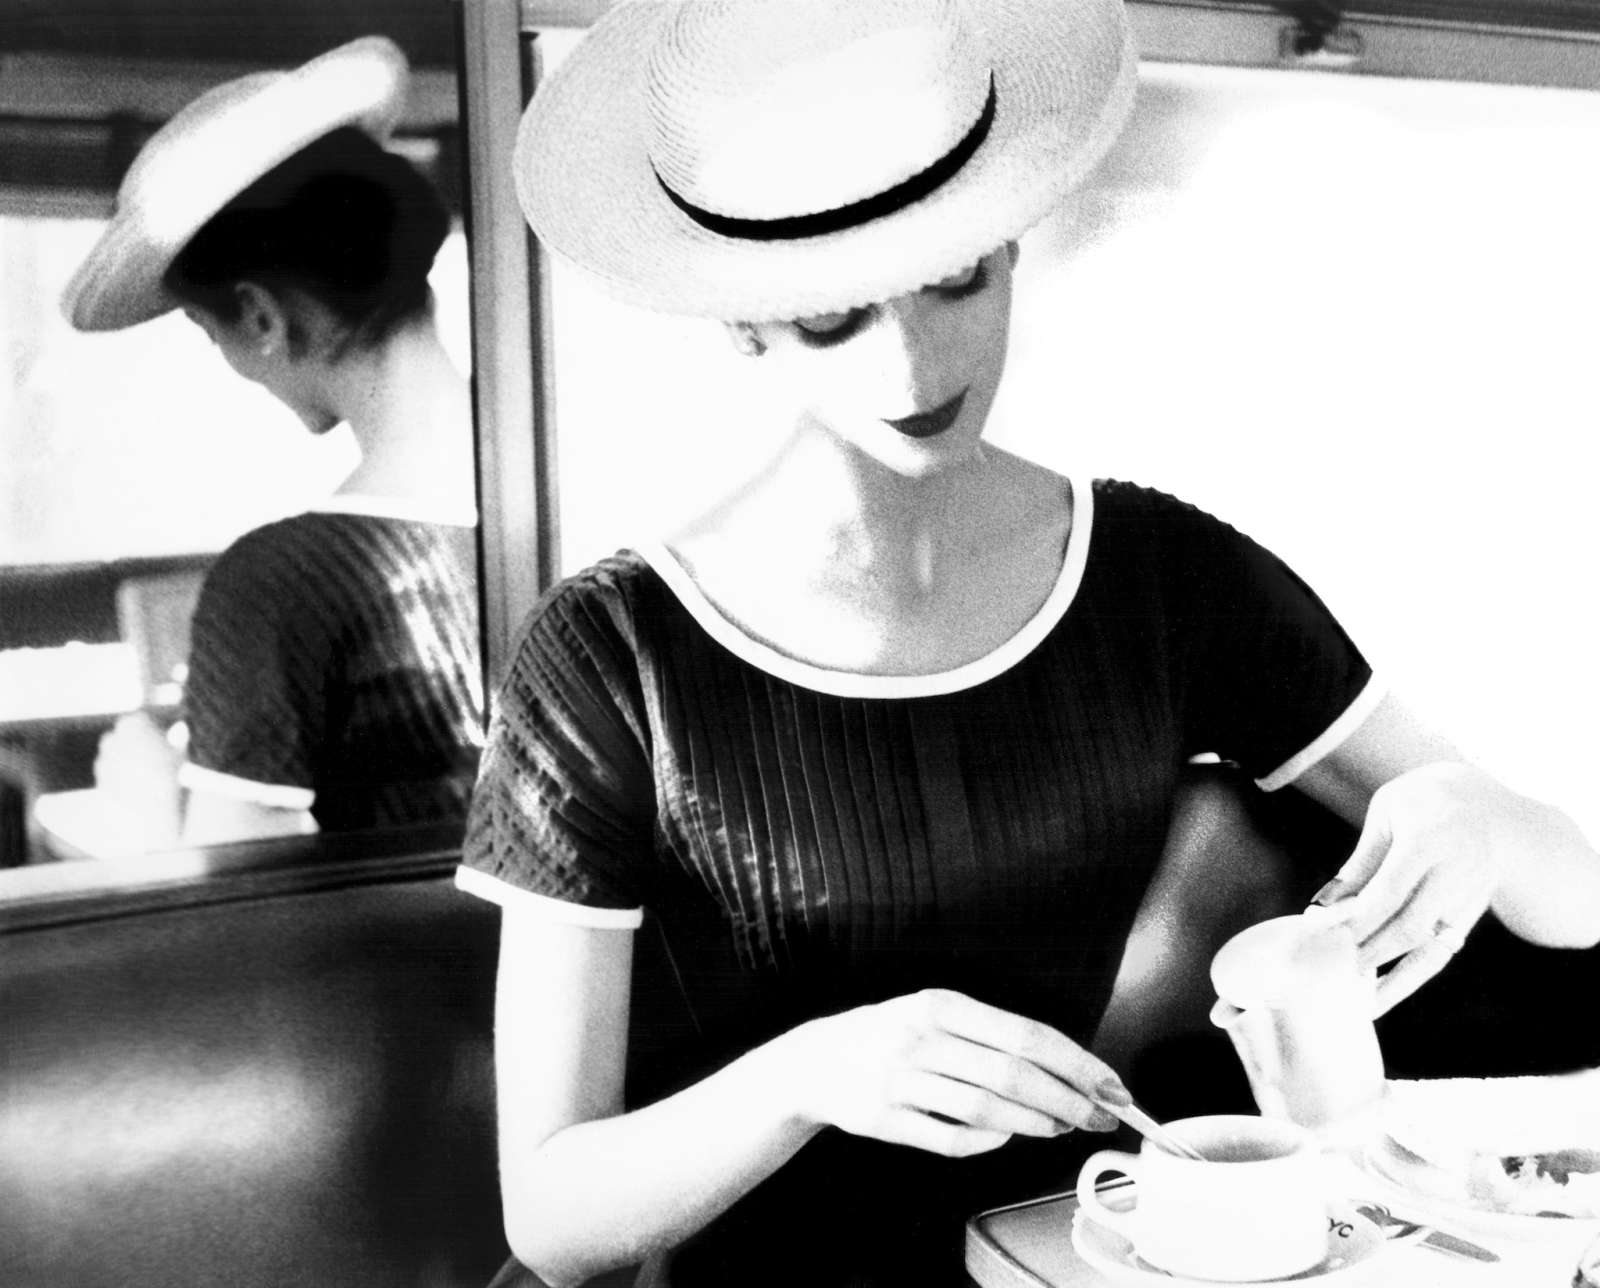 Lillian Bassman, Carmen Having Tea, circa 1950